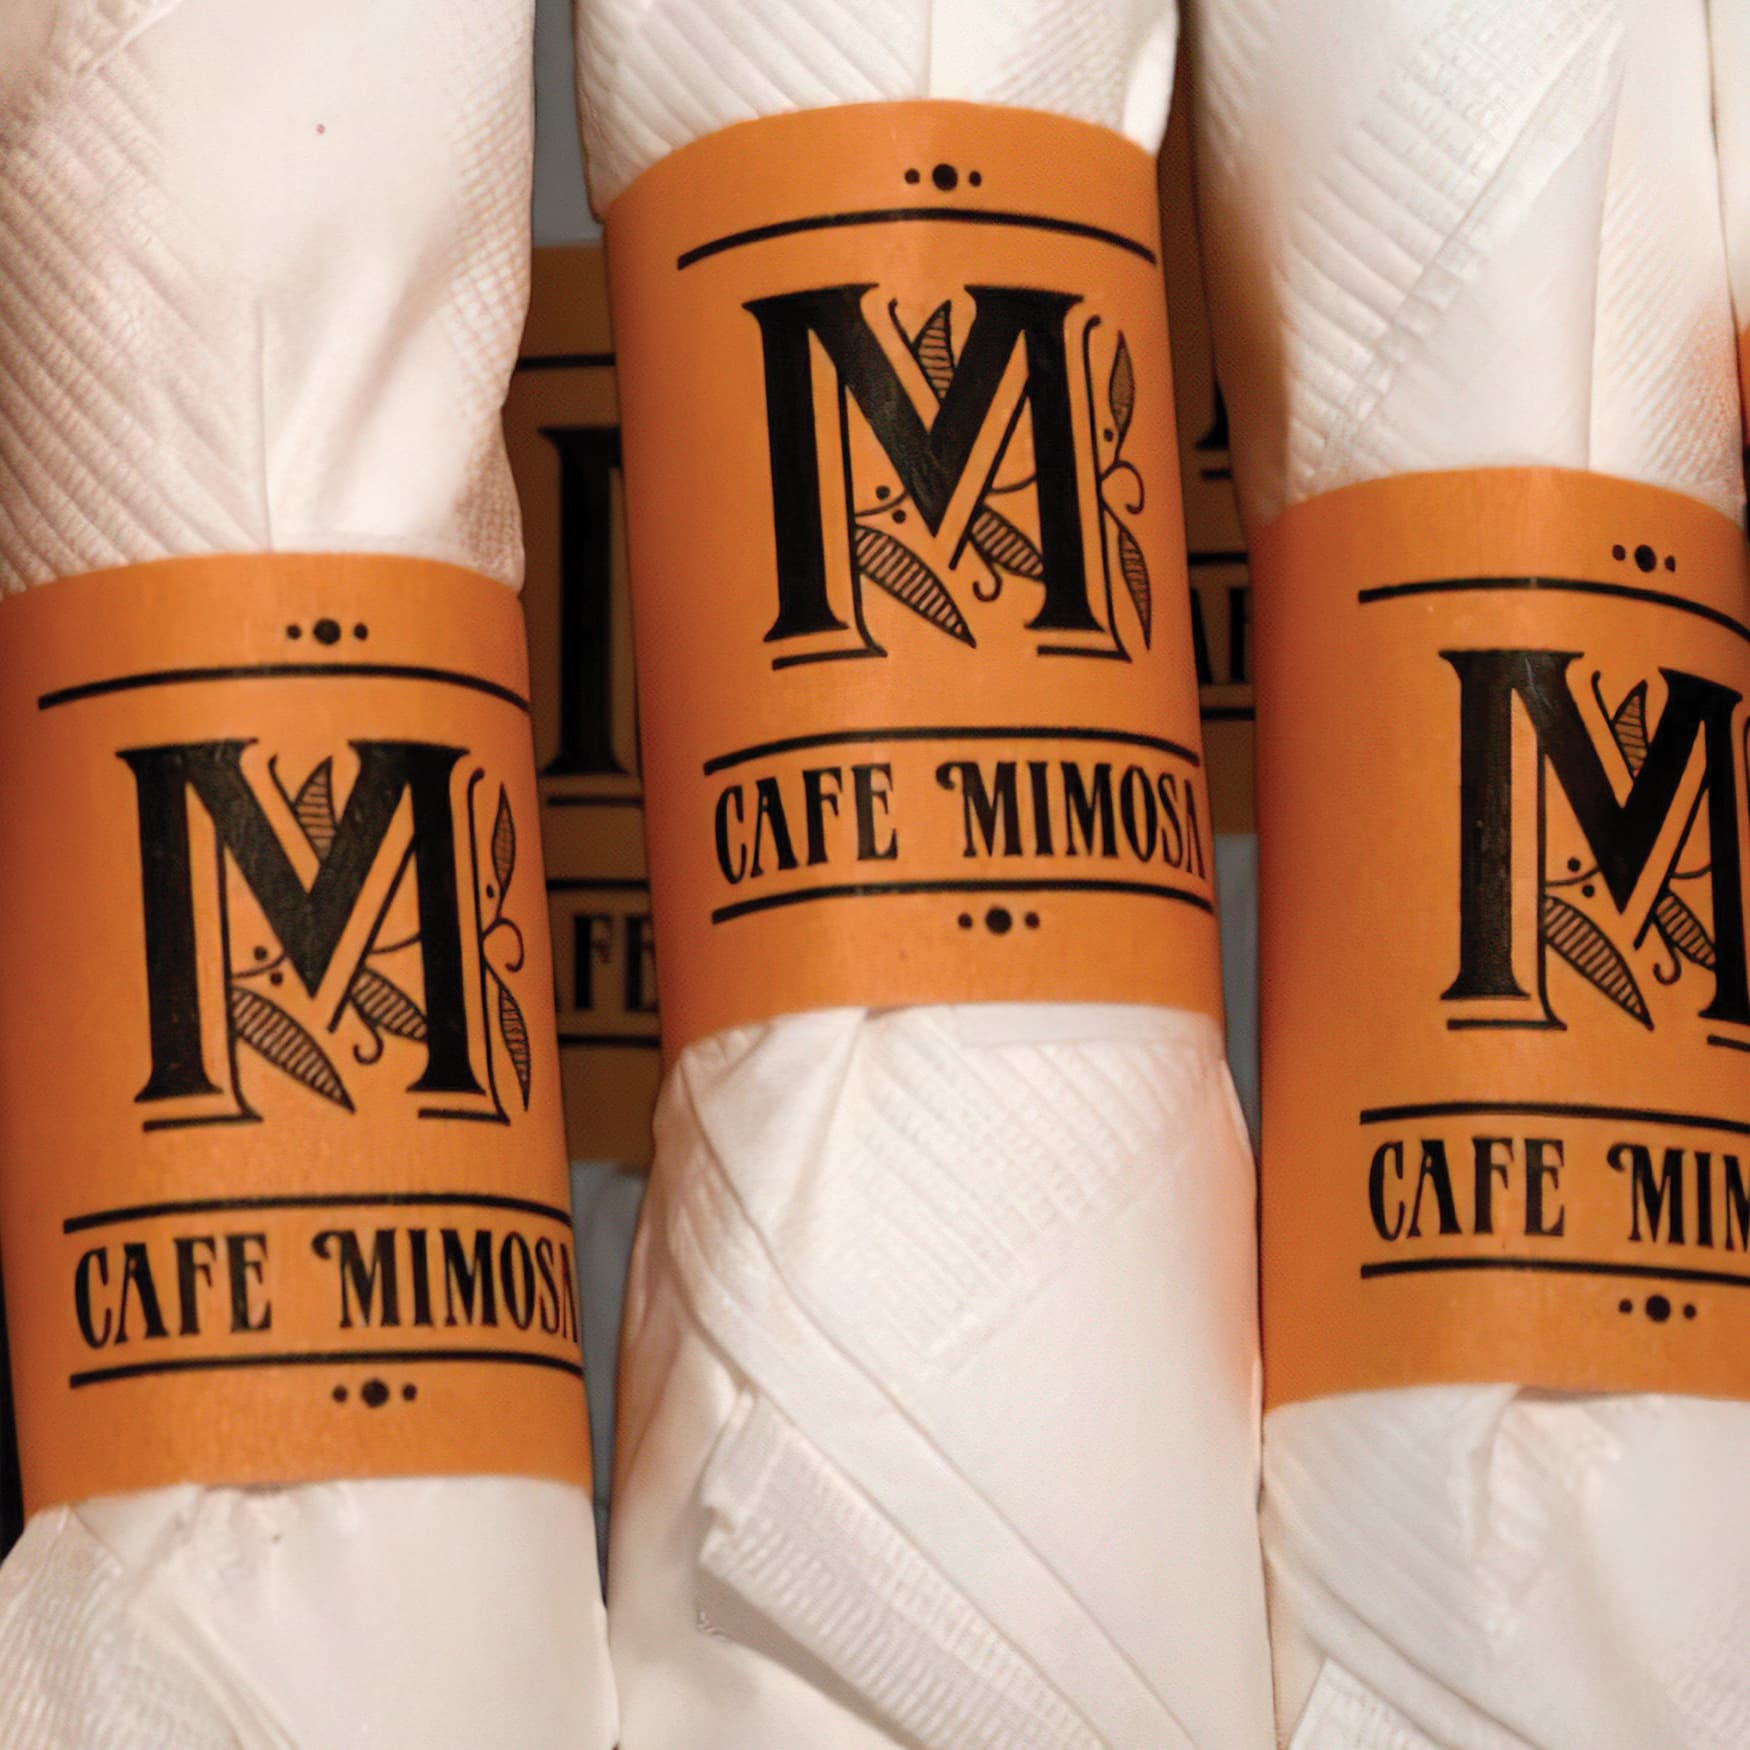 The Cafe Mimosa brand applied to a set of napkin bands.